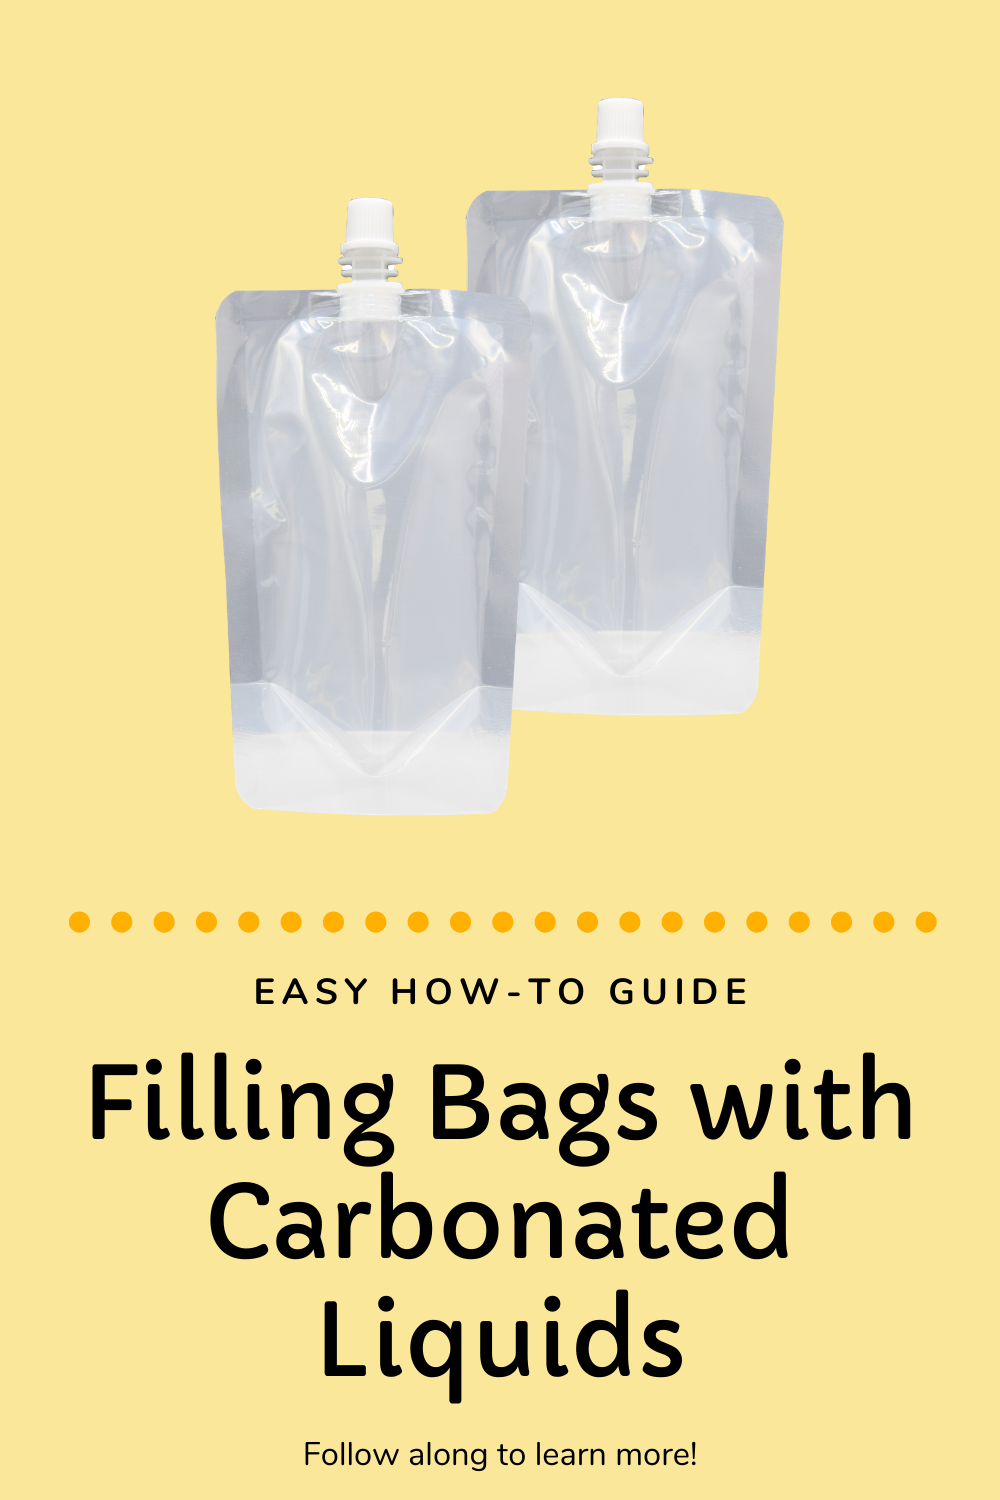 Filling Bags with Carbonated Liquids